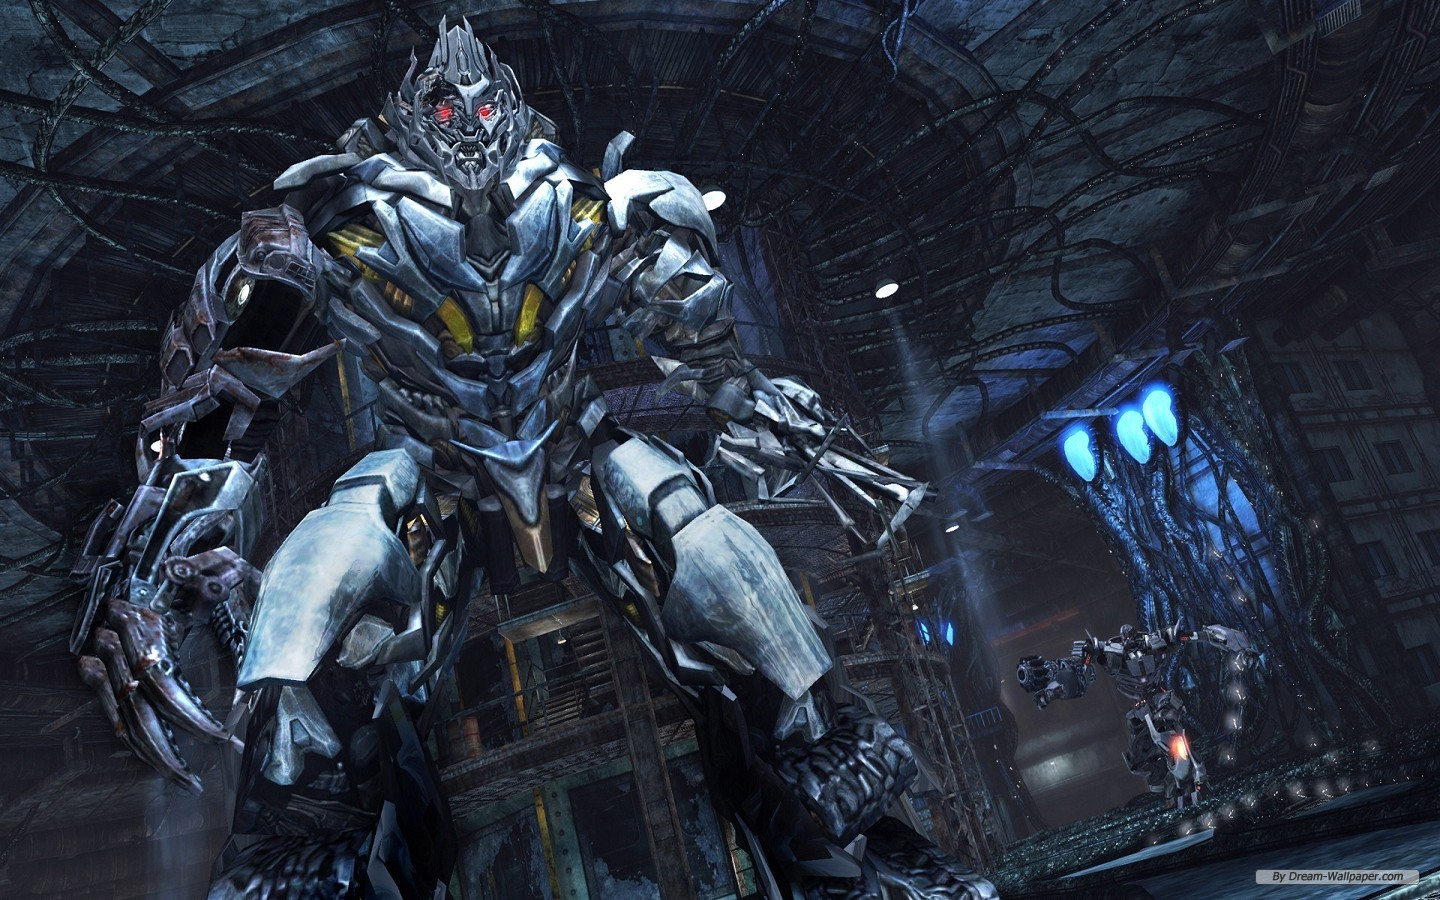 Download Megatron Transformers Fall of Cybertron 1440x900